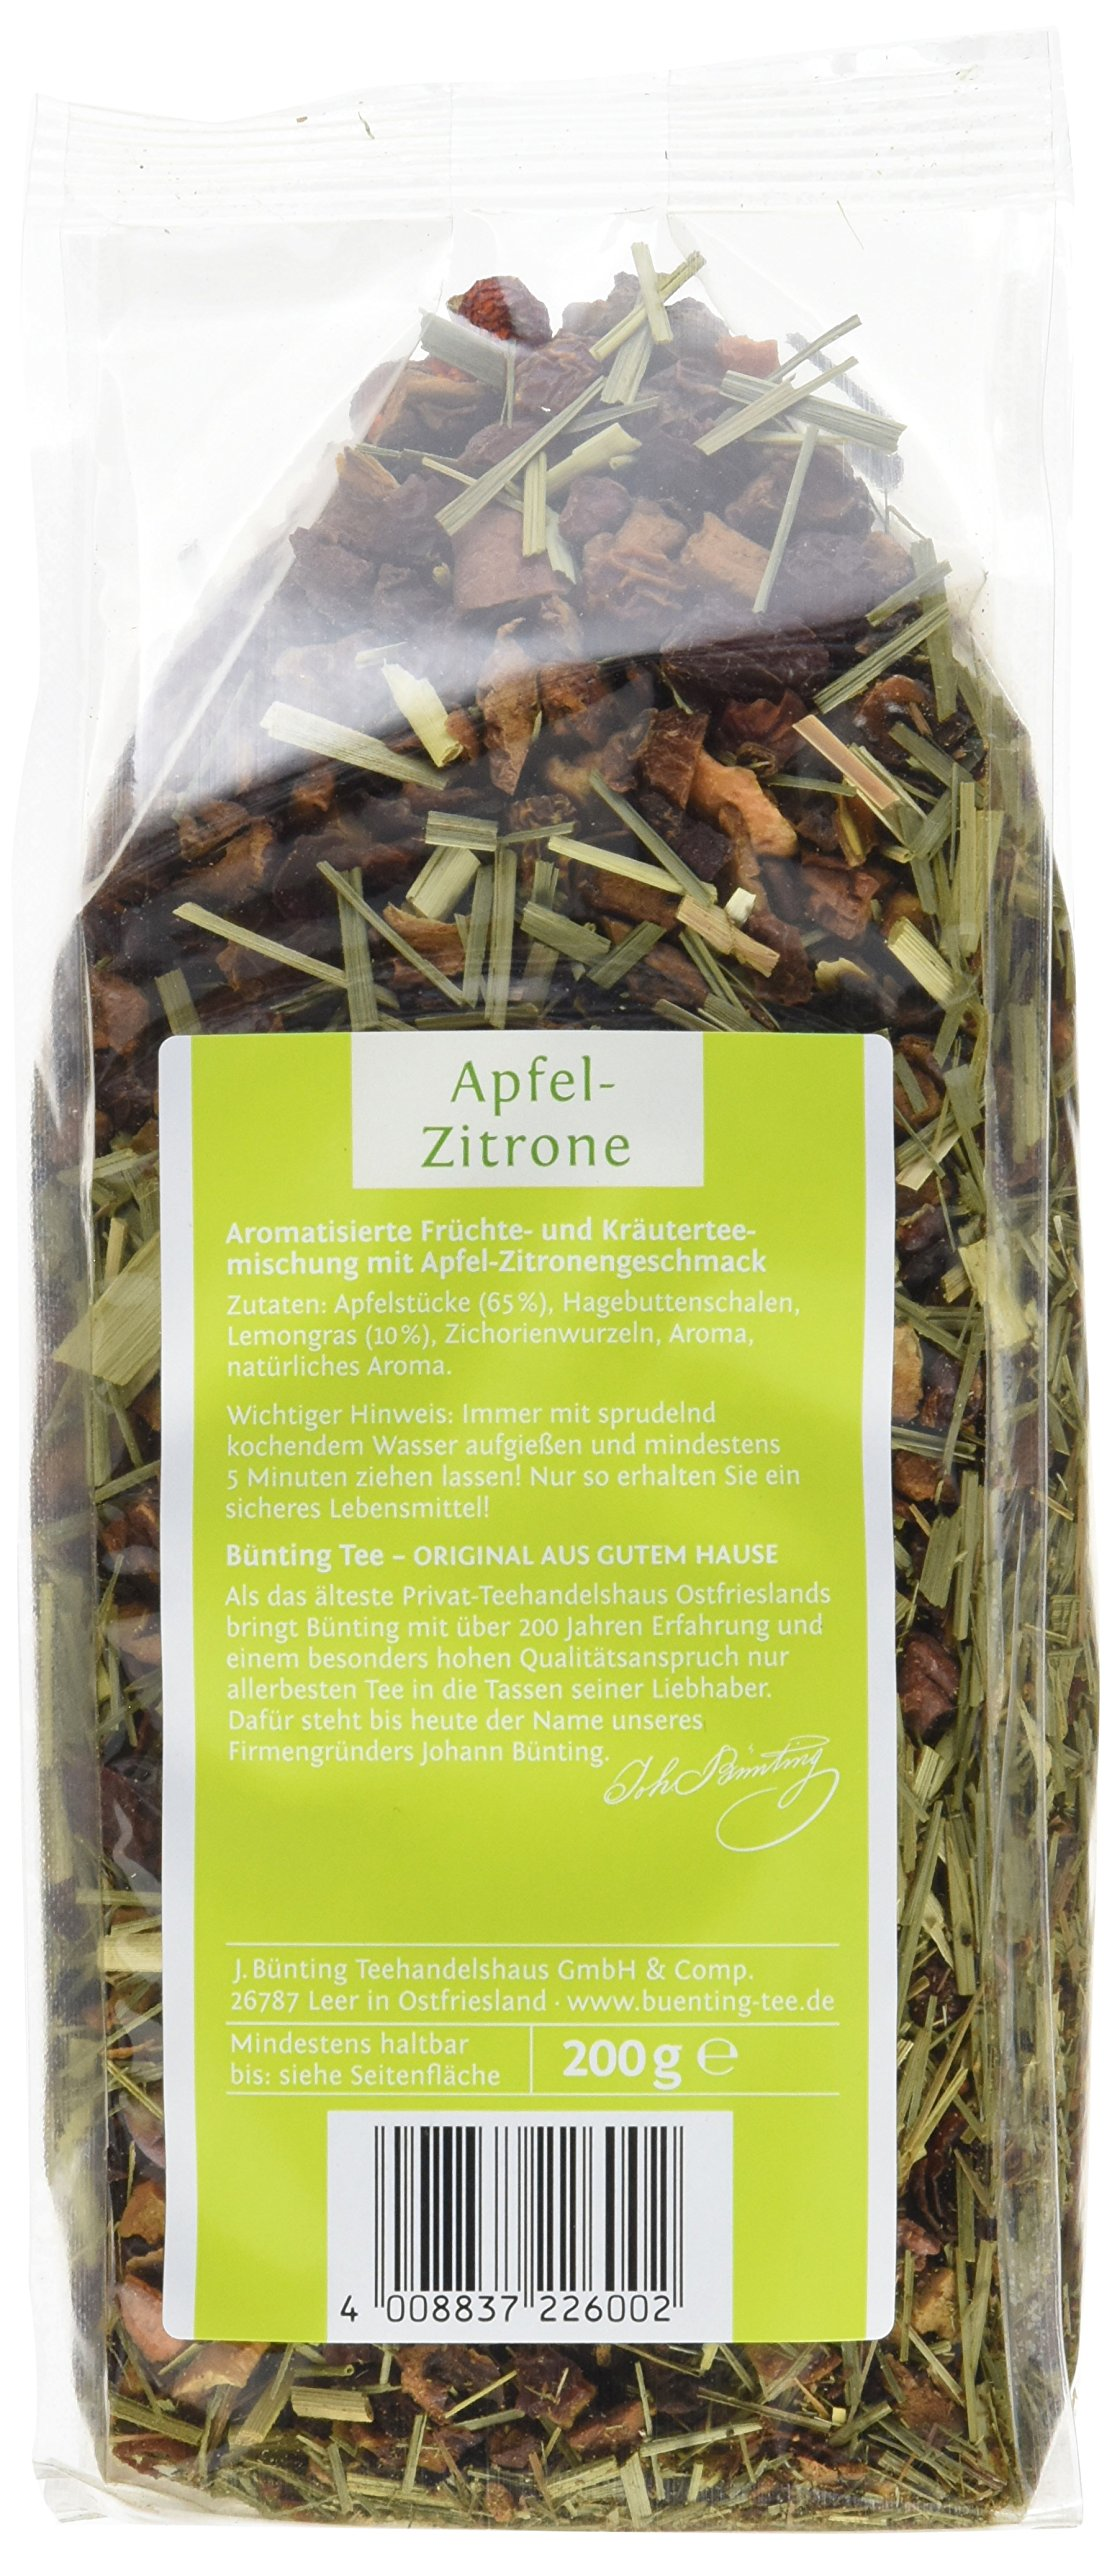 Bnting-Tee-Apfel-Zitrone-200-g-lose-6er-Pack-6-x-200-g